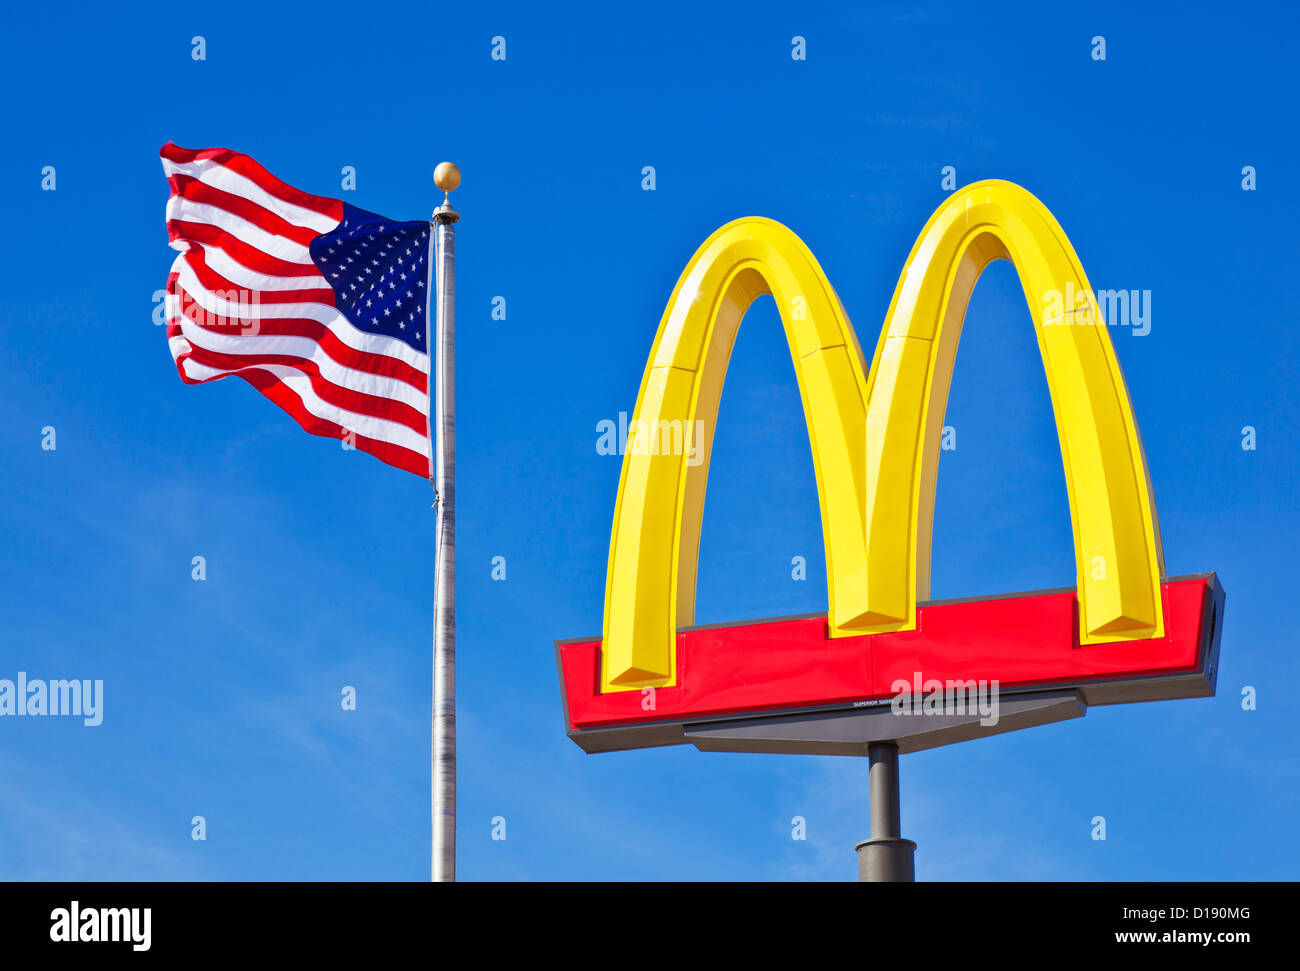 Mcdonald's Logo arches sign against a clear blue sky with an american flag stars and stripes USA United States - Stock Image